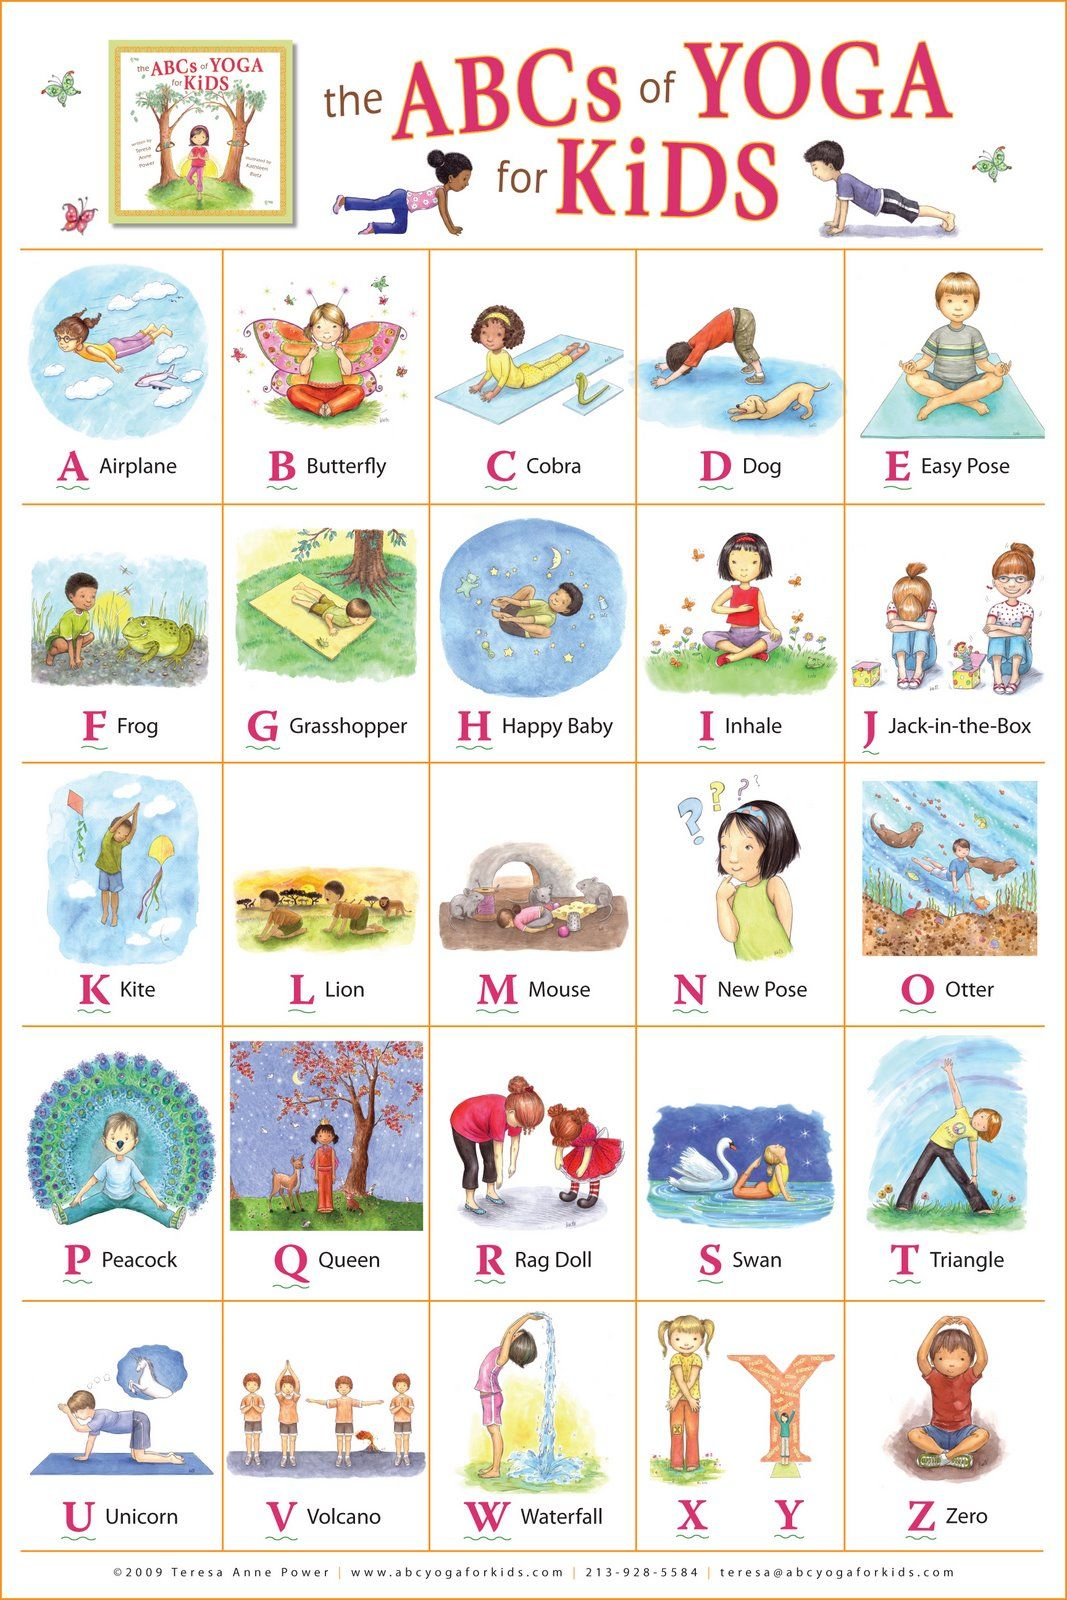 The ABC of Yoga - what a wonderful way to encourage exercise & improve co-ordination. #autism #aspergers